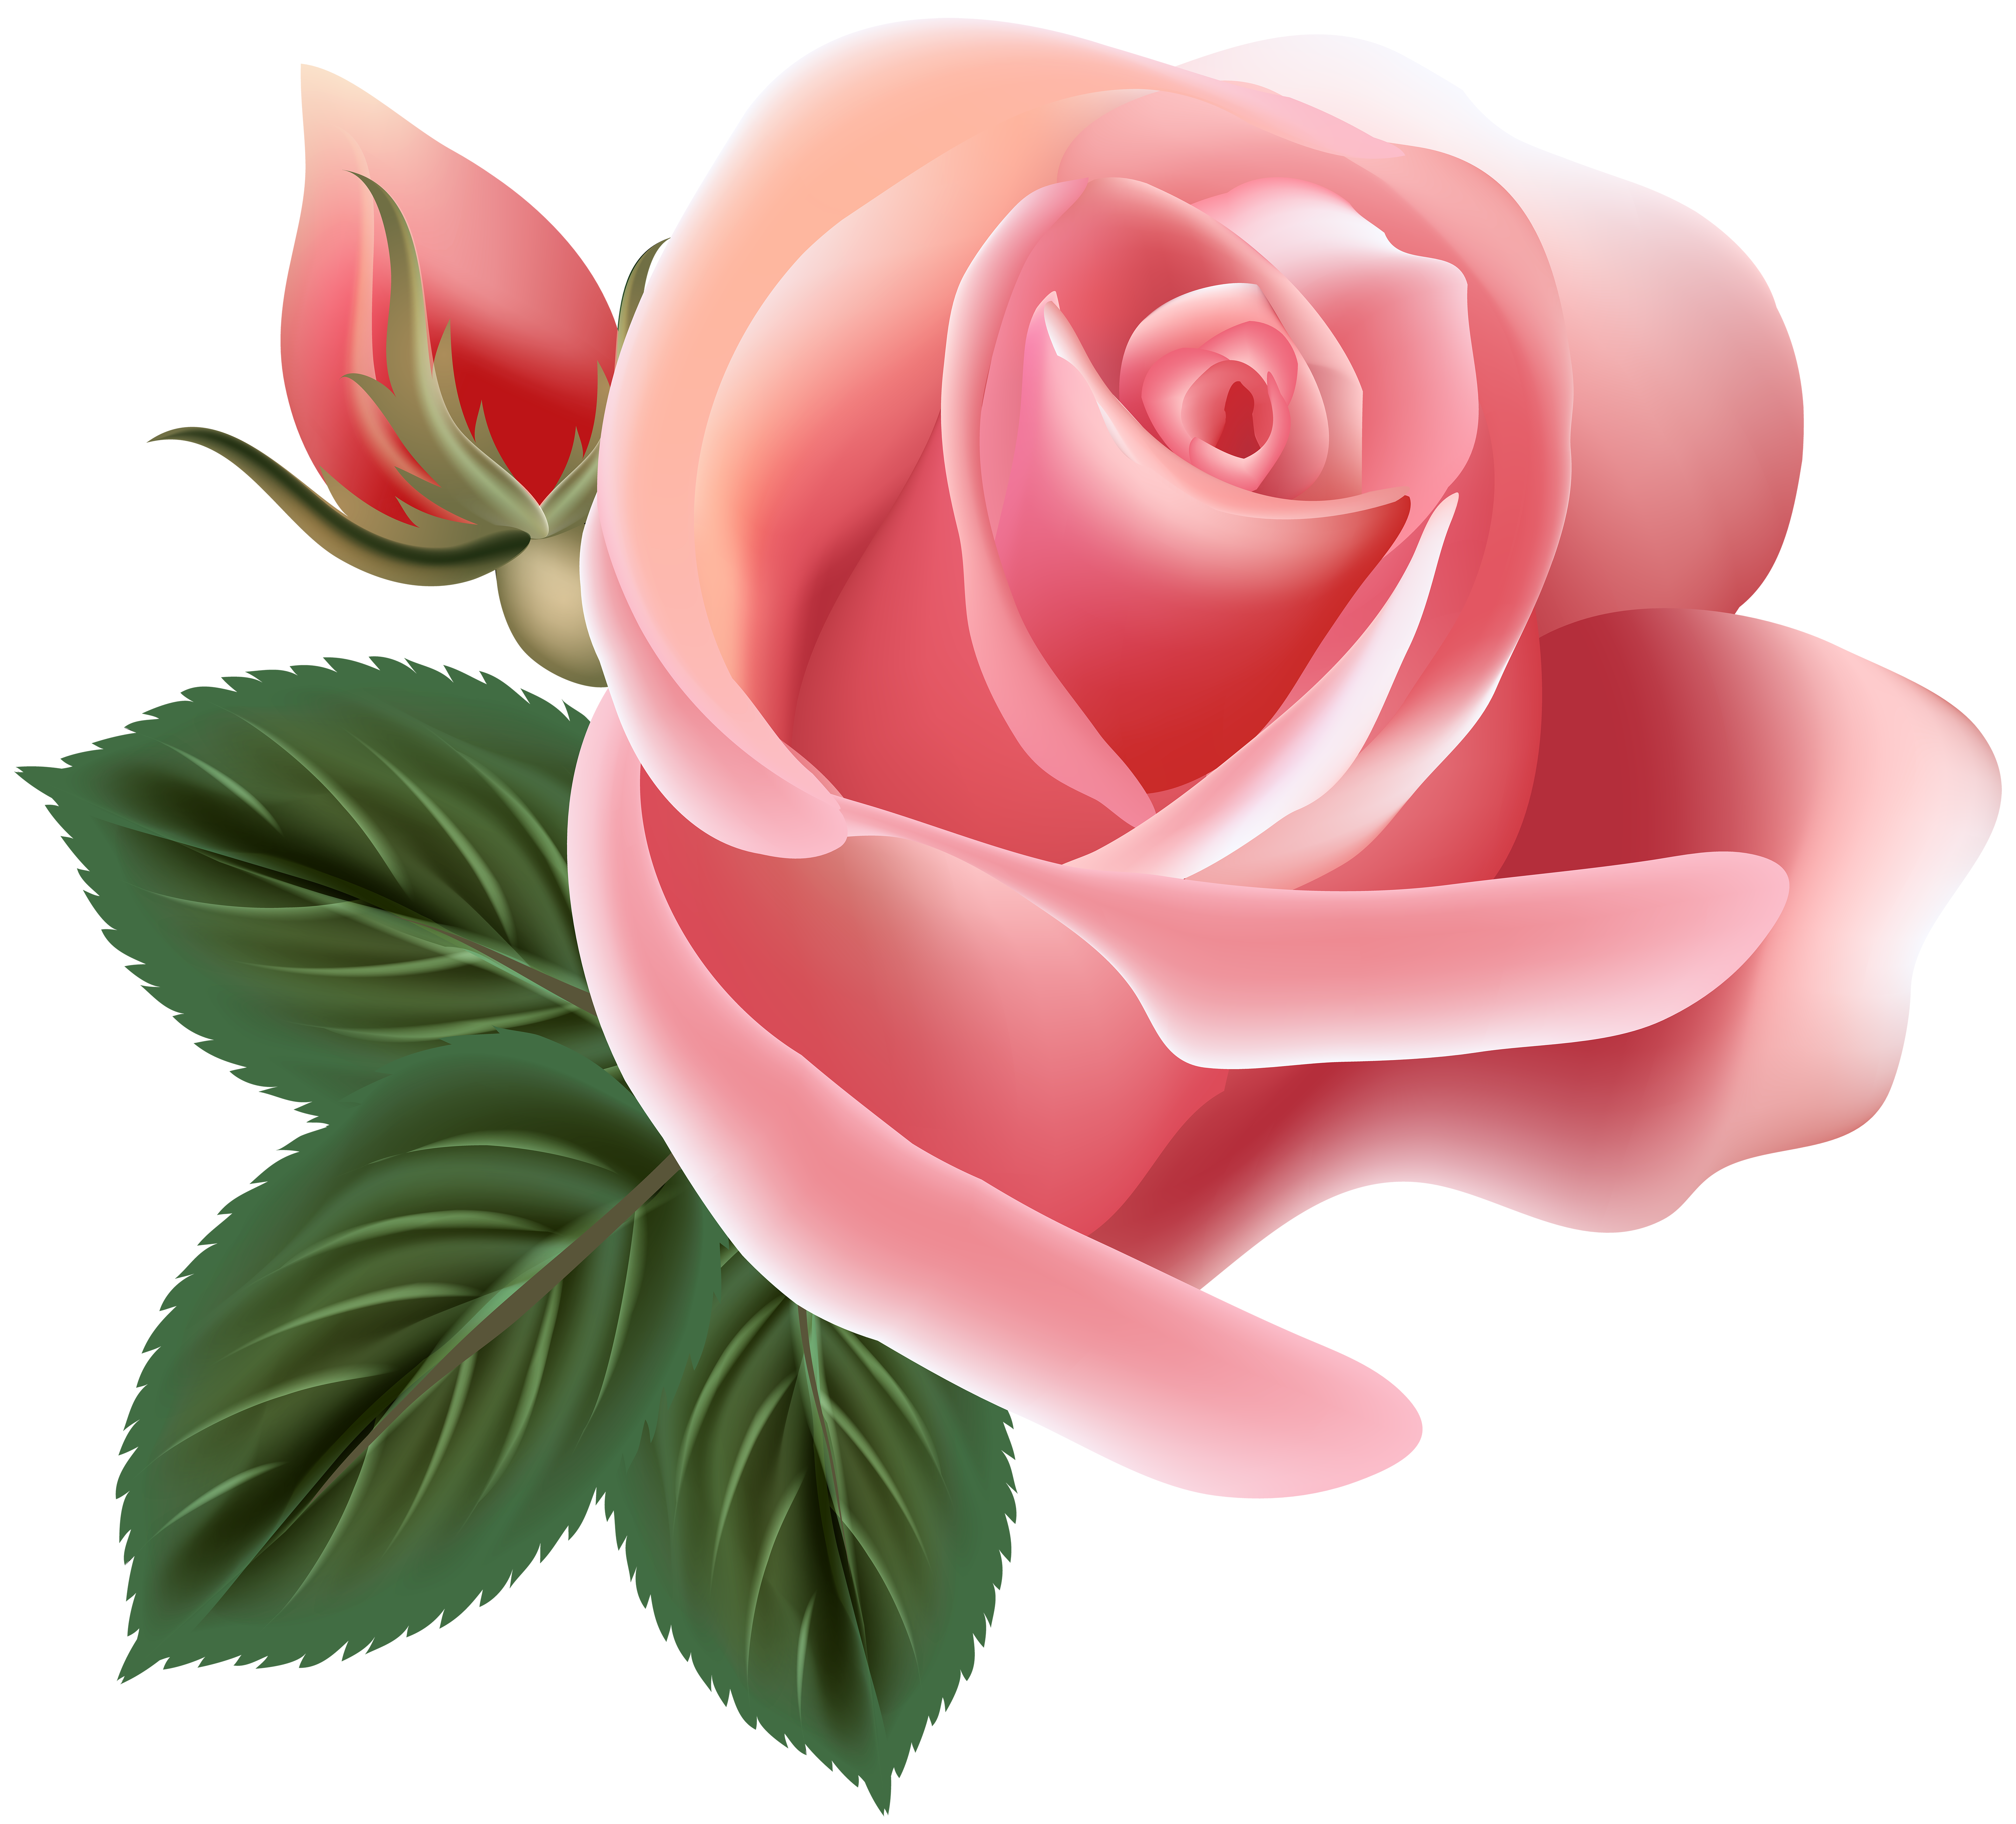 Rose pink baby cross clipart picture freeuse stock Pin by Татьяна Саенко on фотошоп | Pinterest | Clip art, Pink roses ... picture freeuse stock